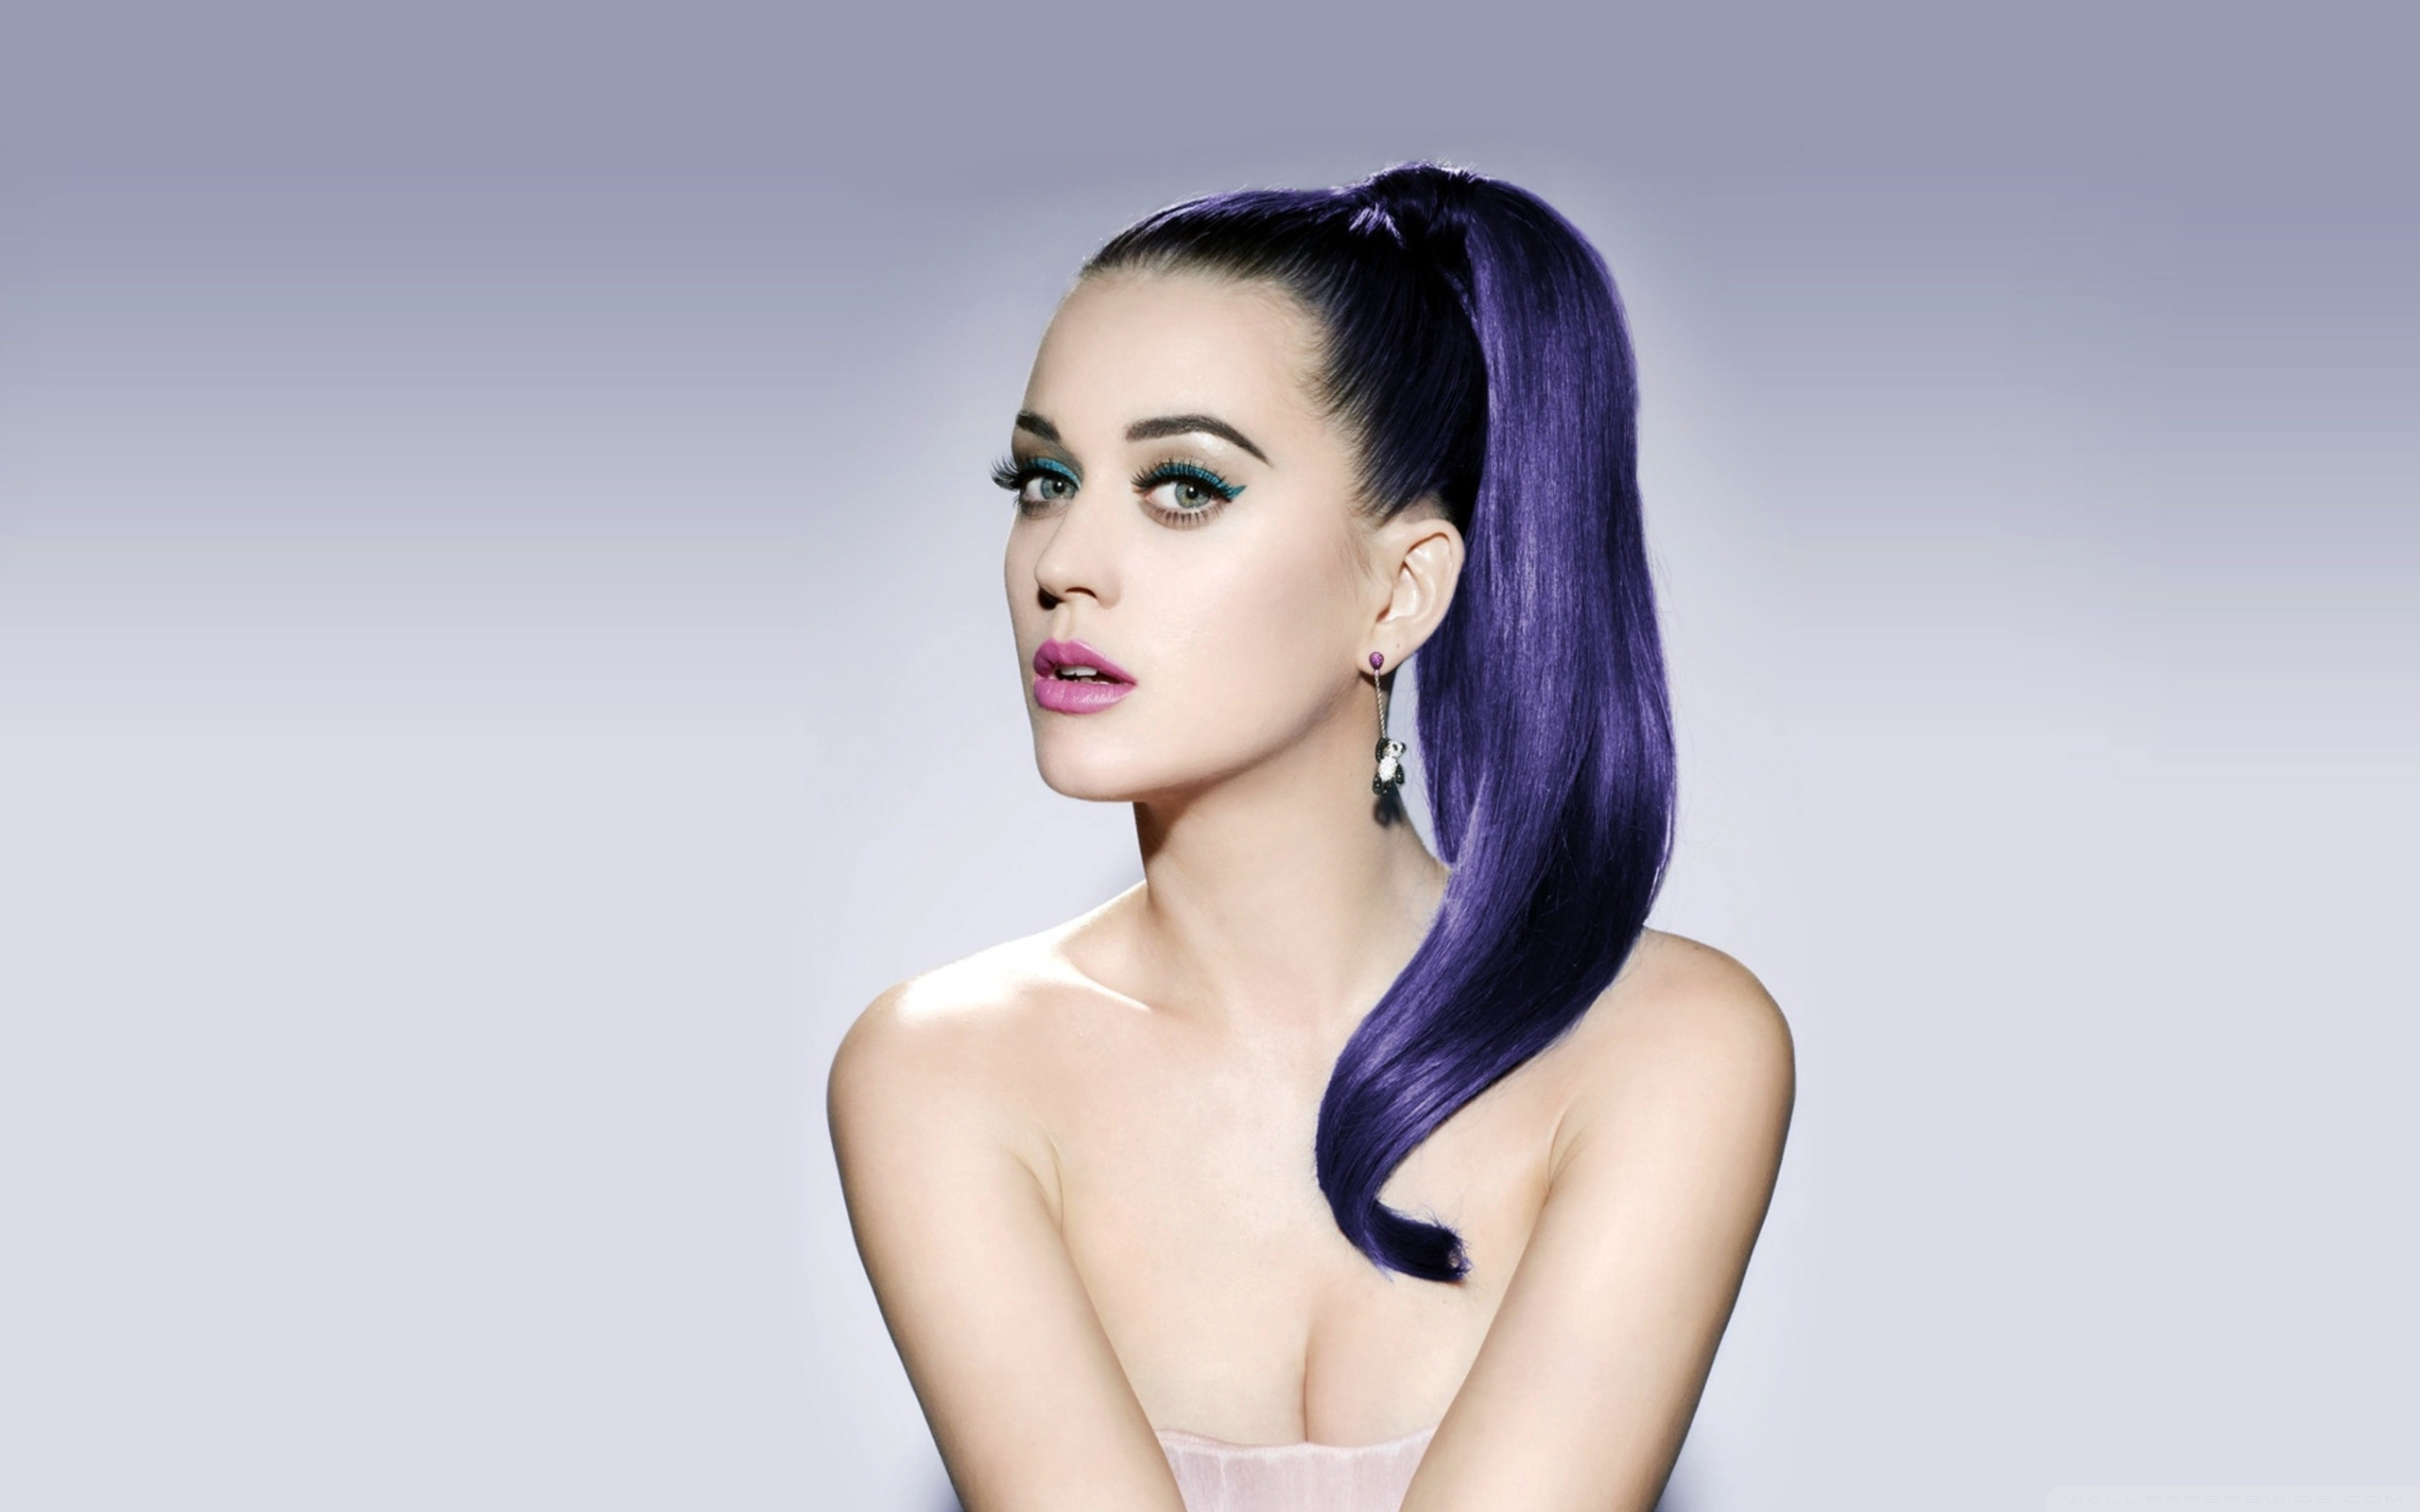 katy perry 2012 ❤ 4k hd desktop wallpaper for 4k ultra hd tv